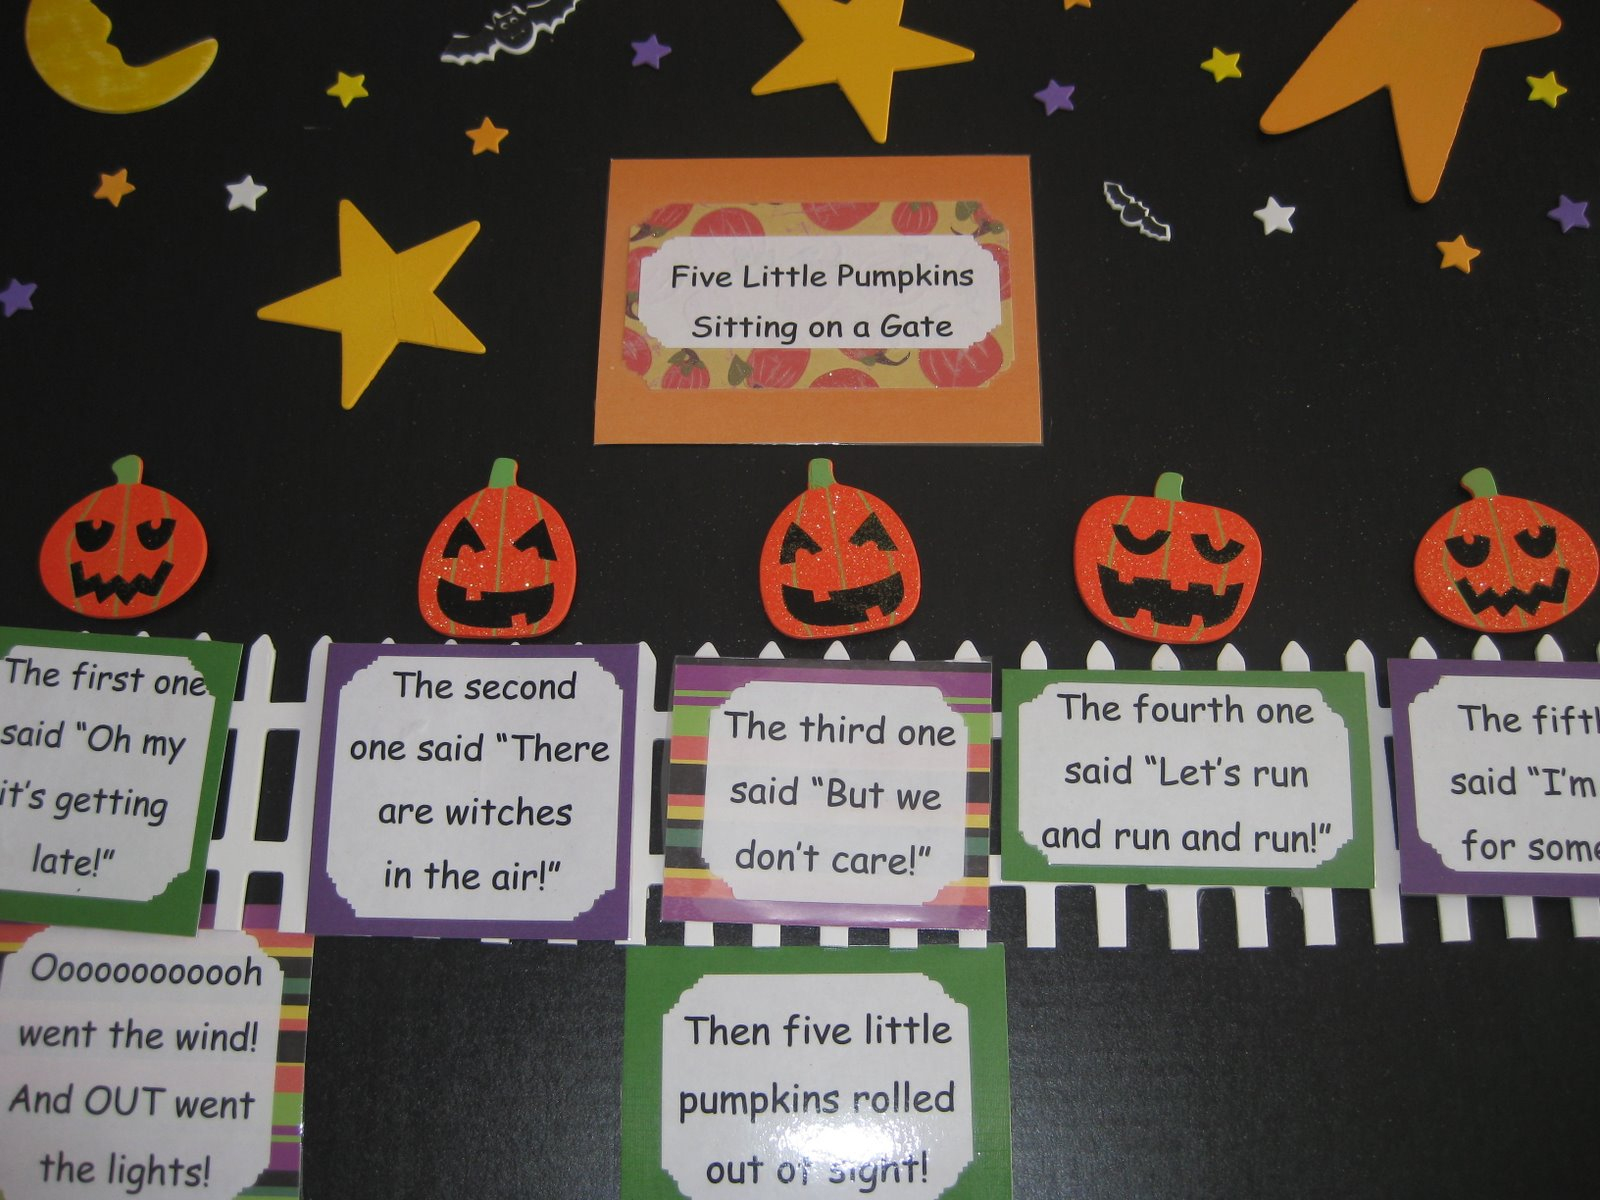 5 Little Pumpkins Book Worksheet